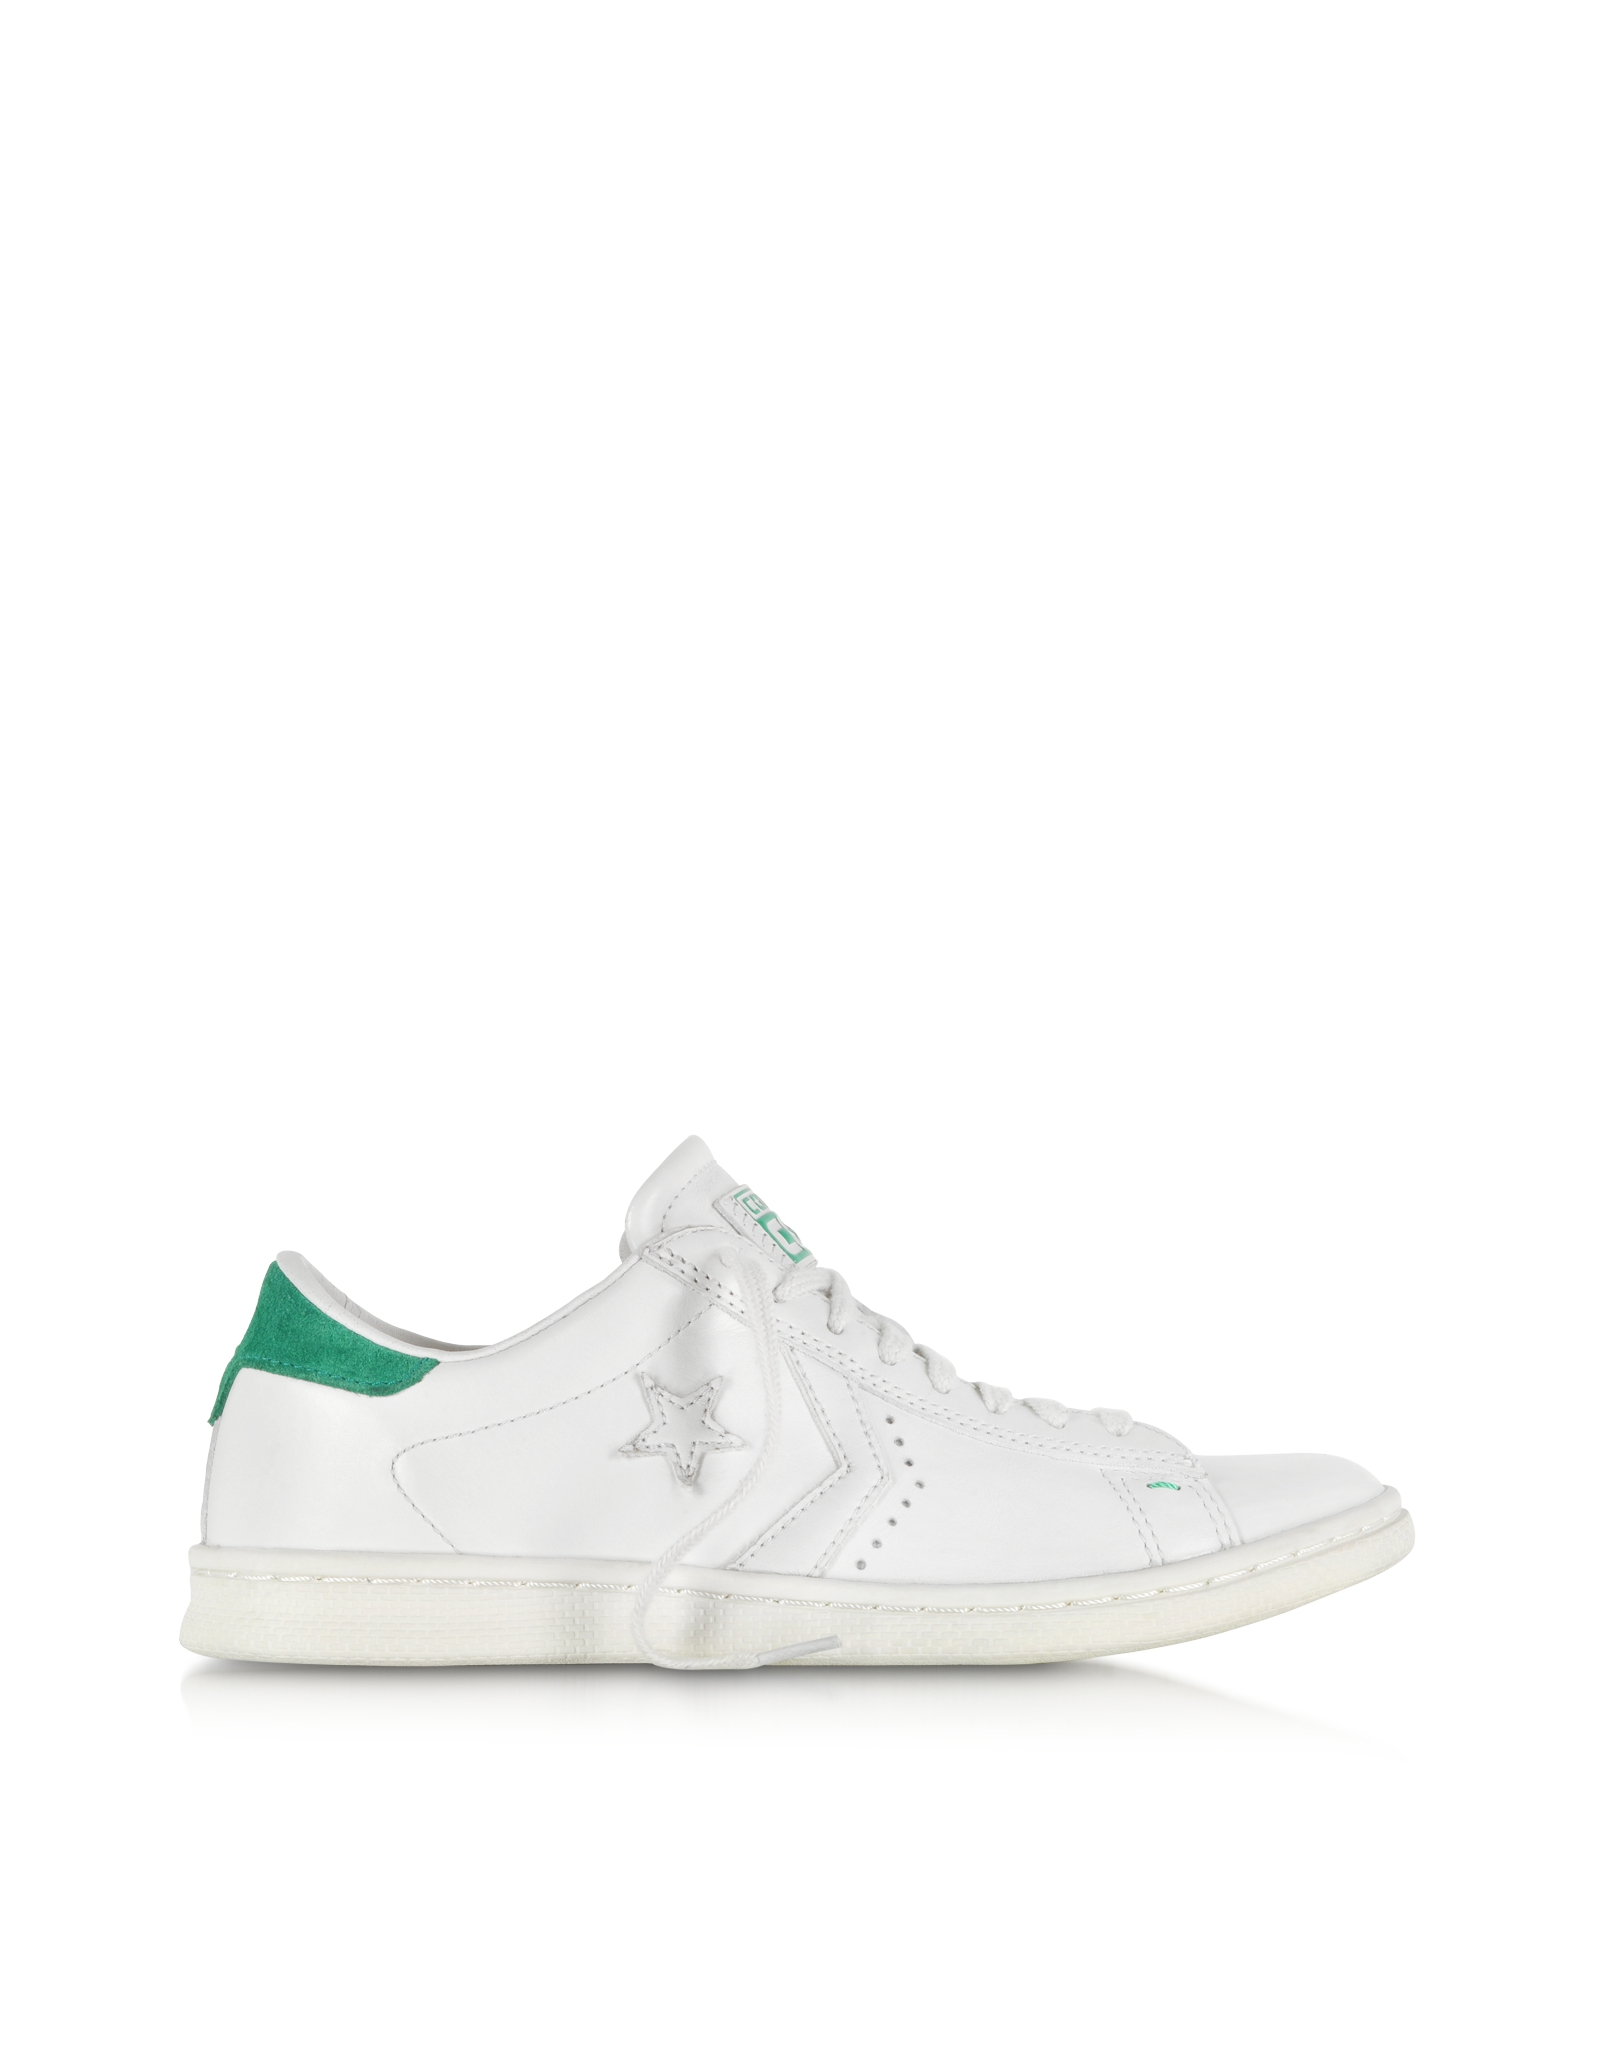 a3ecb503a887dc Converse Cons Pro Leather Lp Ox White Dust And Green Sneaker in ...